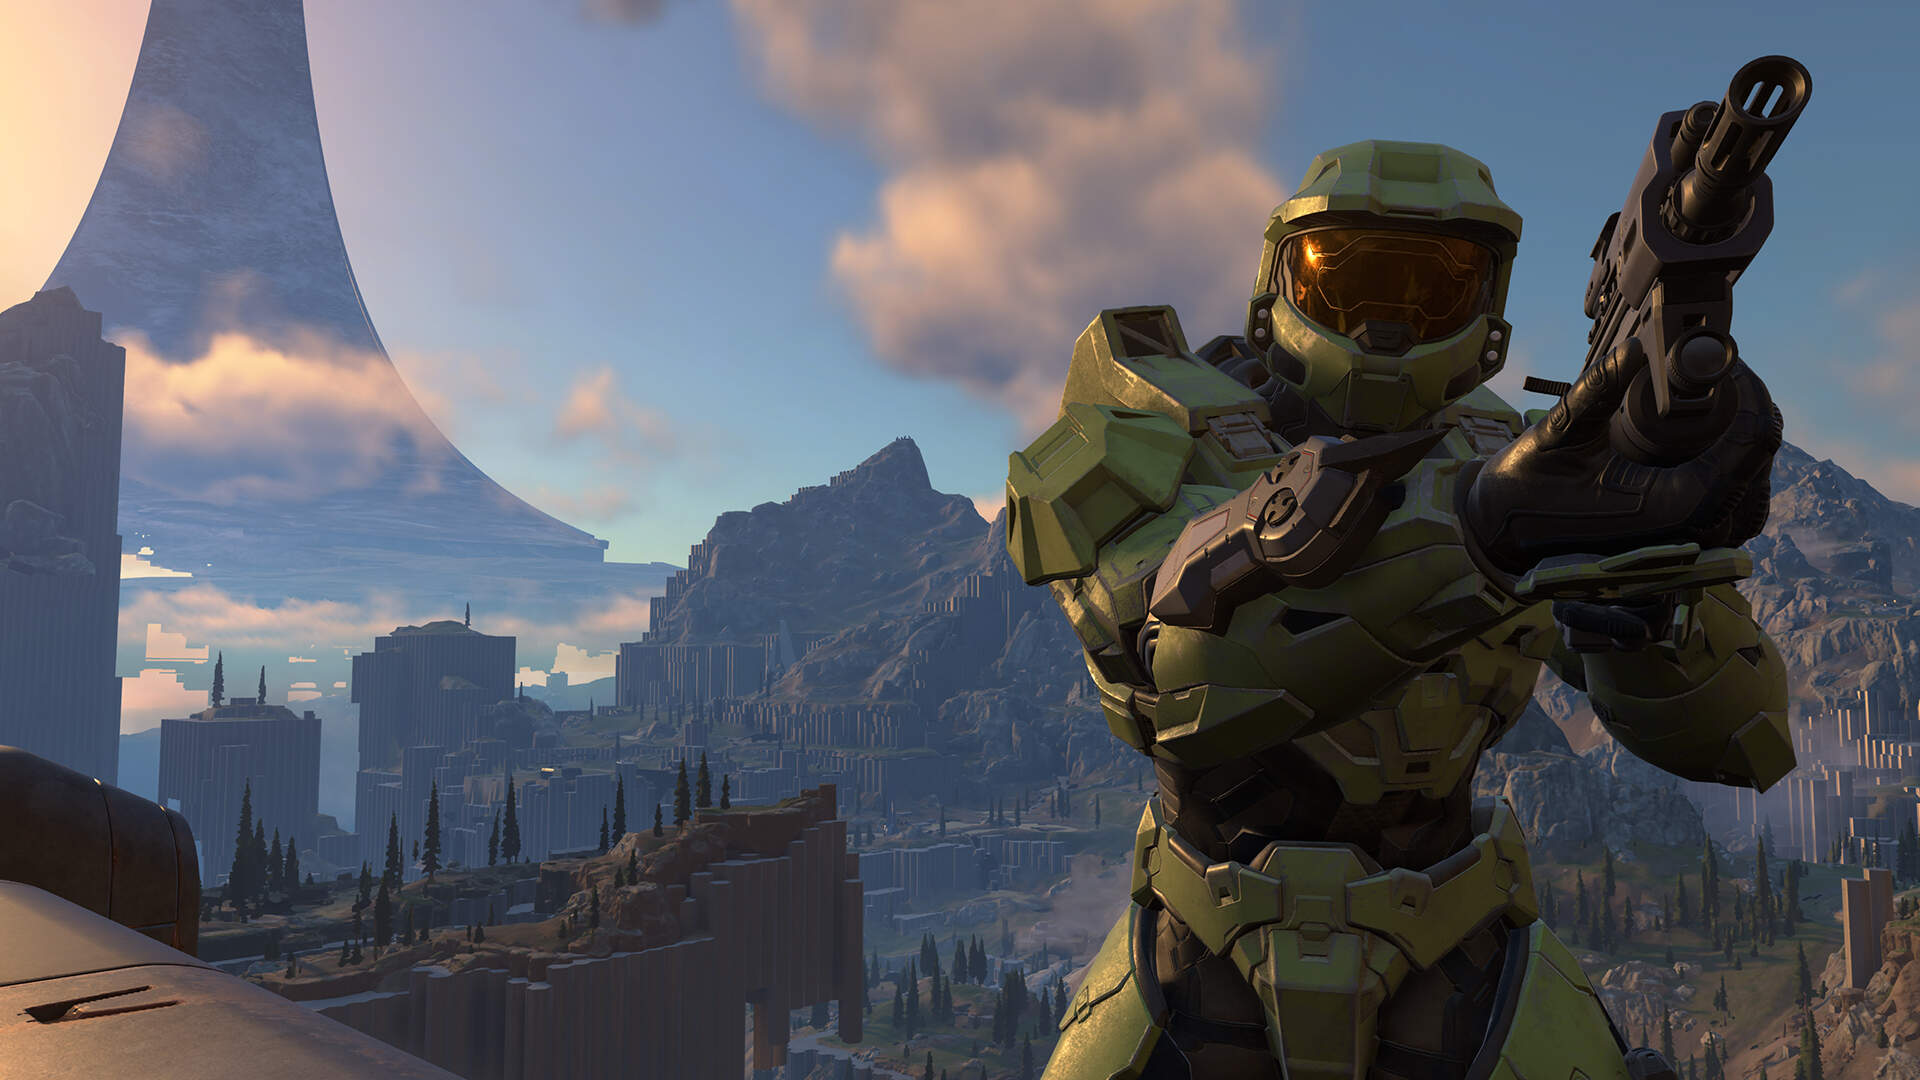 343 Shoots Down a Rumor About Halo Infinite Launching Without Multiplayer